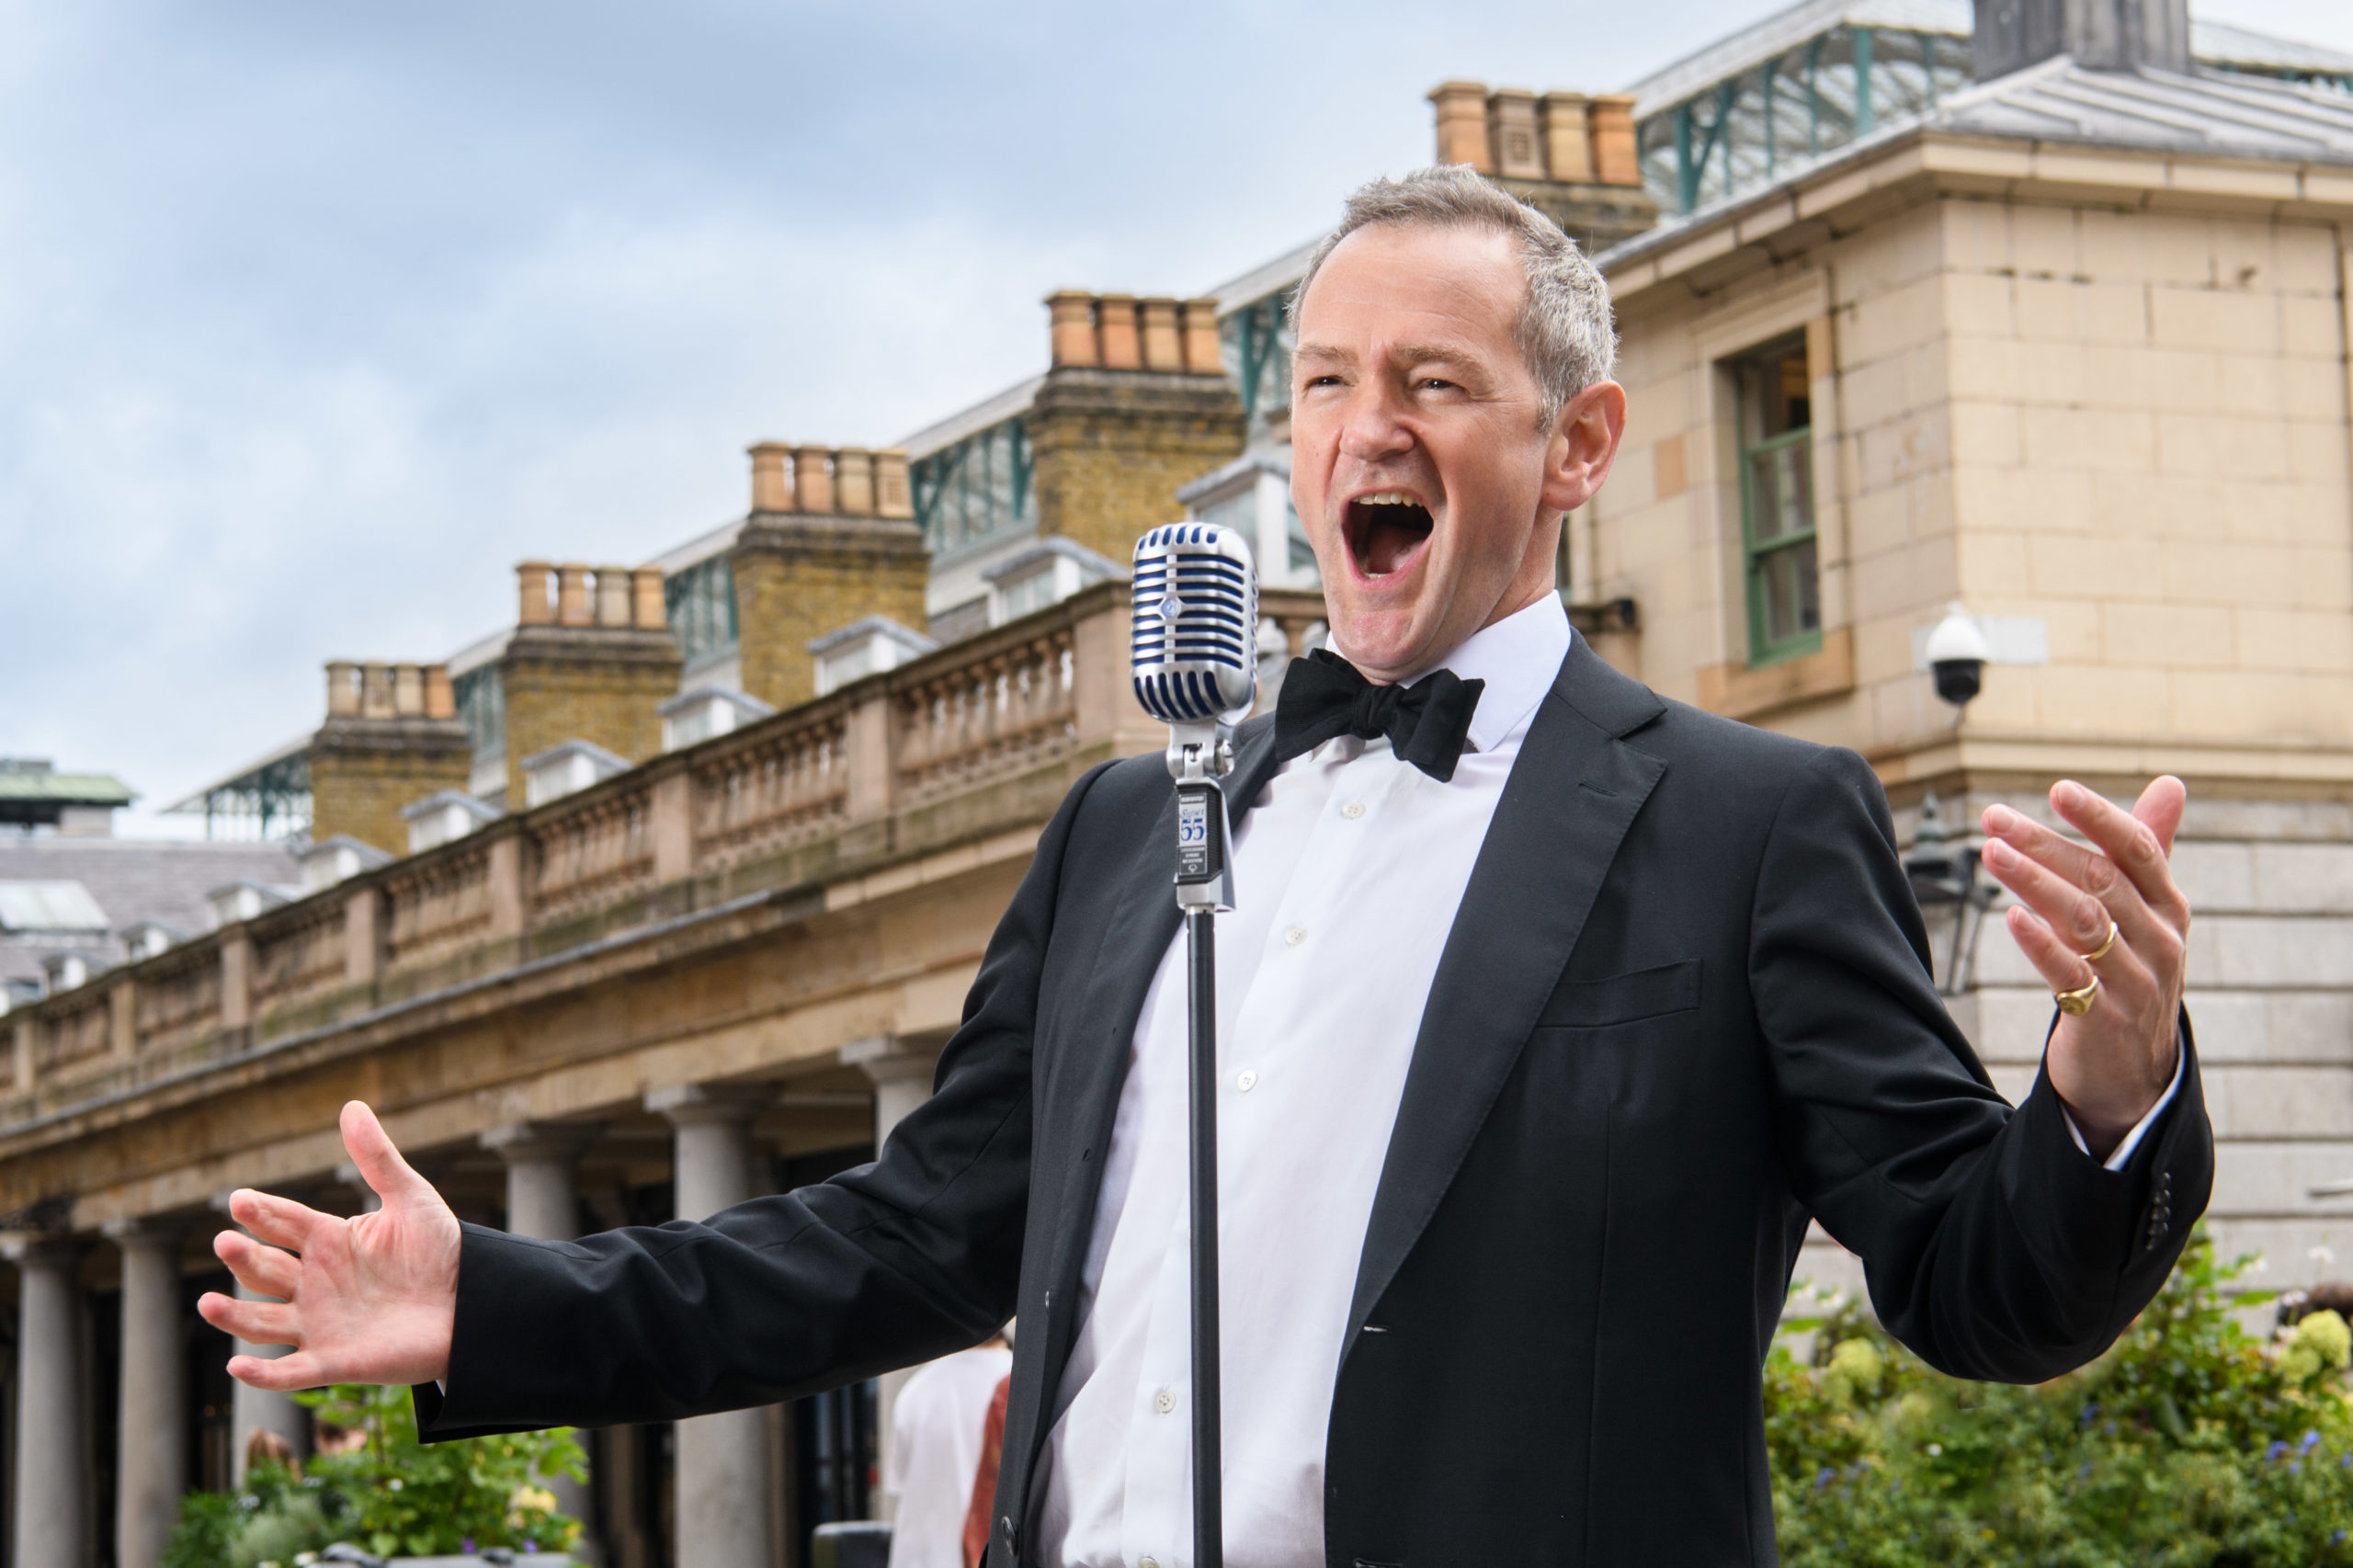 Classic FM's Alexander Armstrong is performing 24 concerts in 24 hours